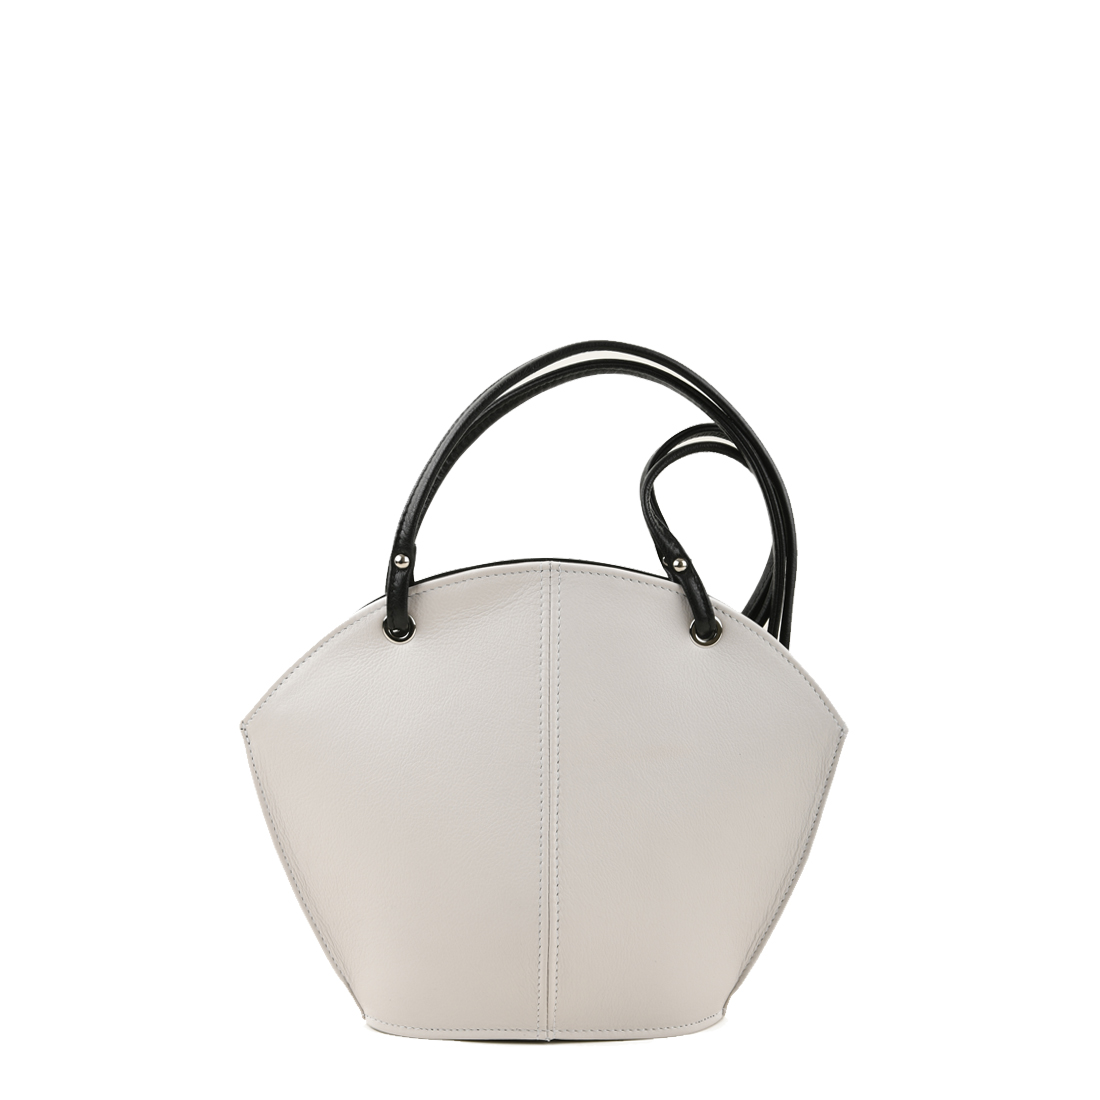 Ava Polvere Leather Shoulder Bag